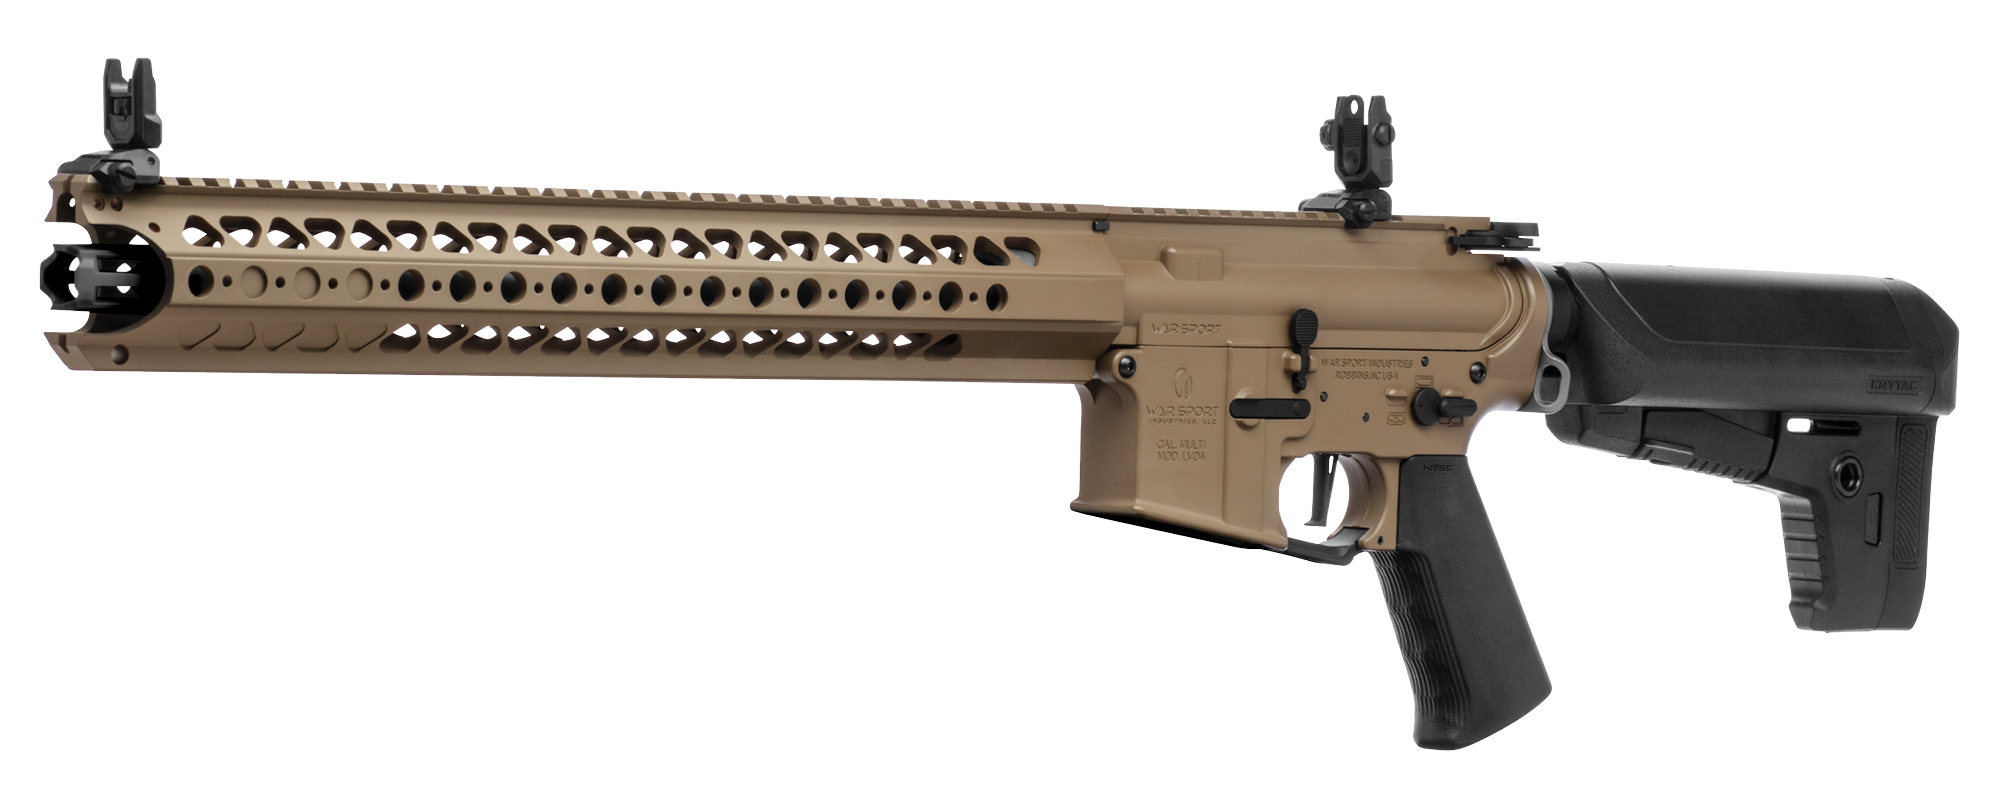 Warsport LVOA-C Flat Dark Earth